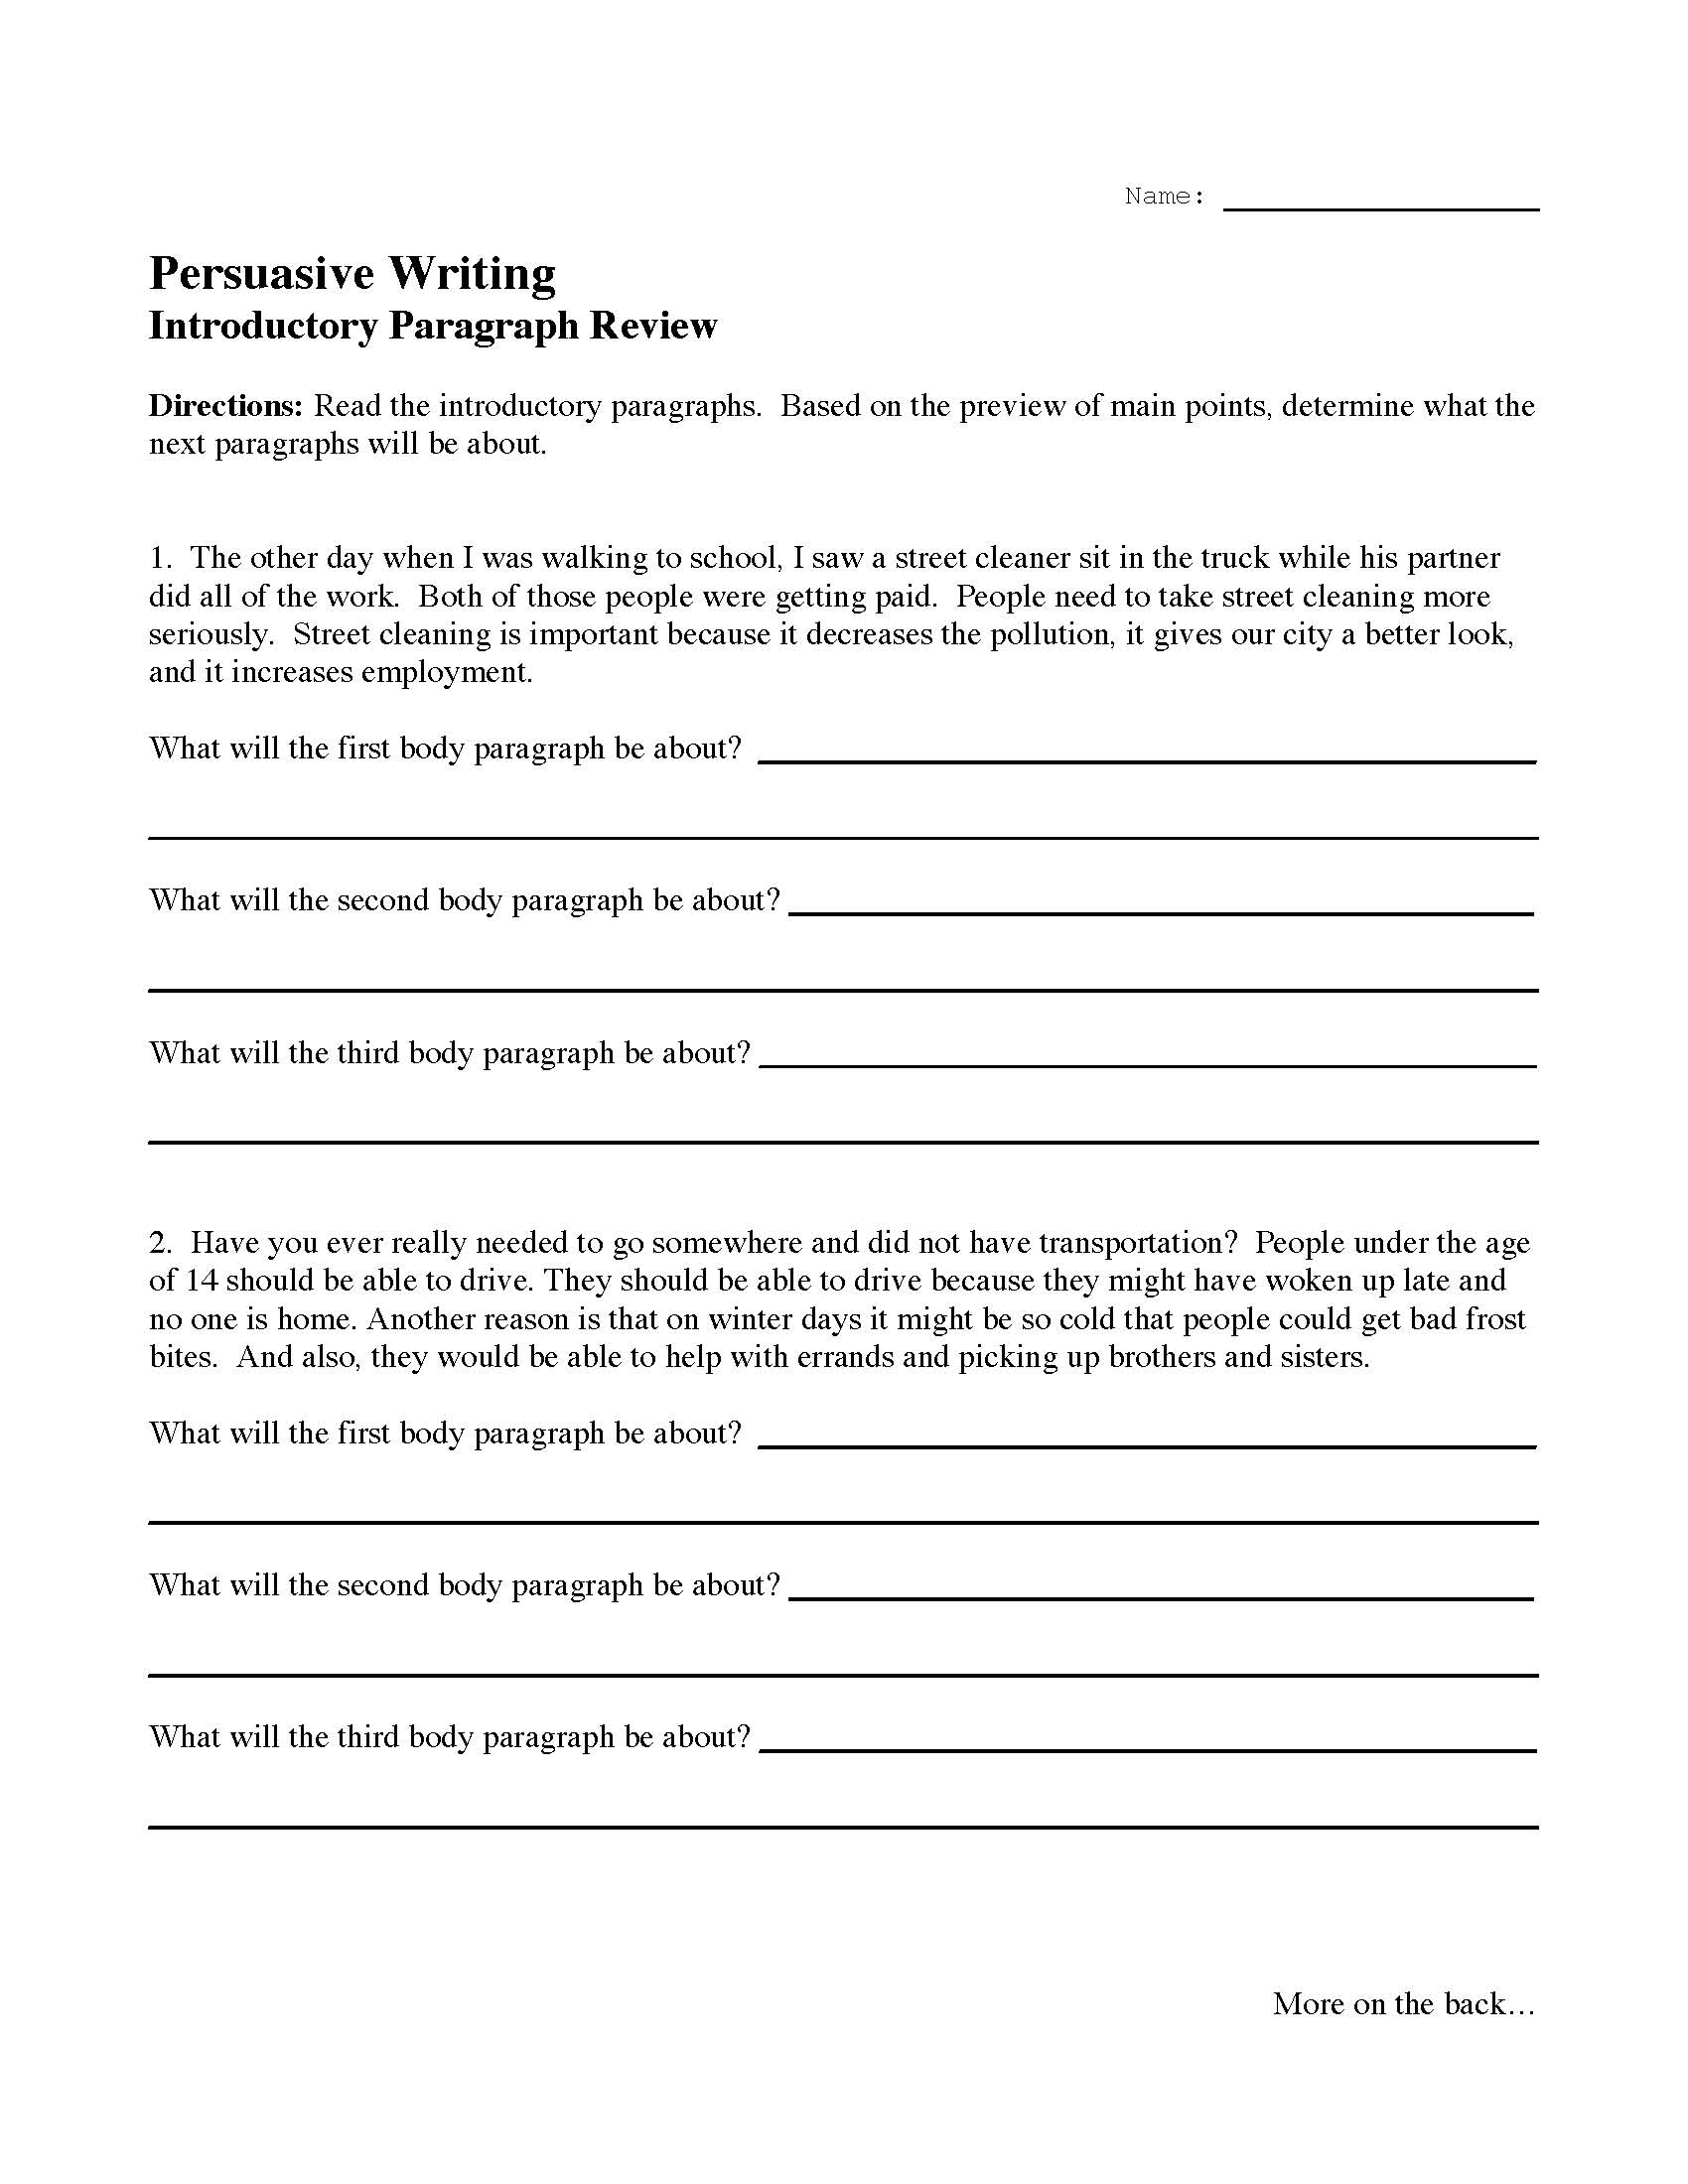 Writing An Introductory Paragraph Worksheet